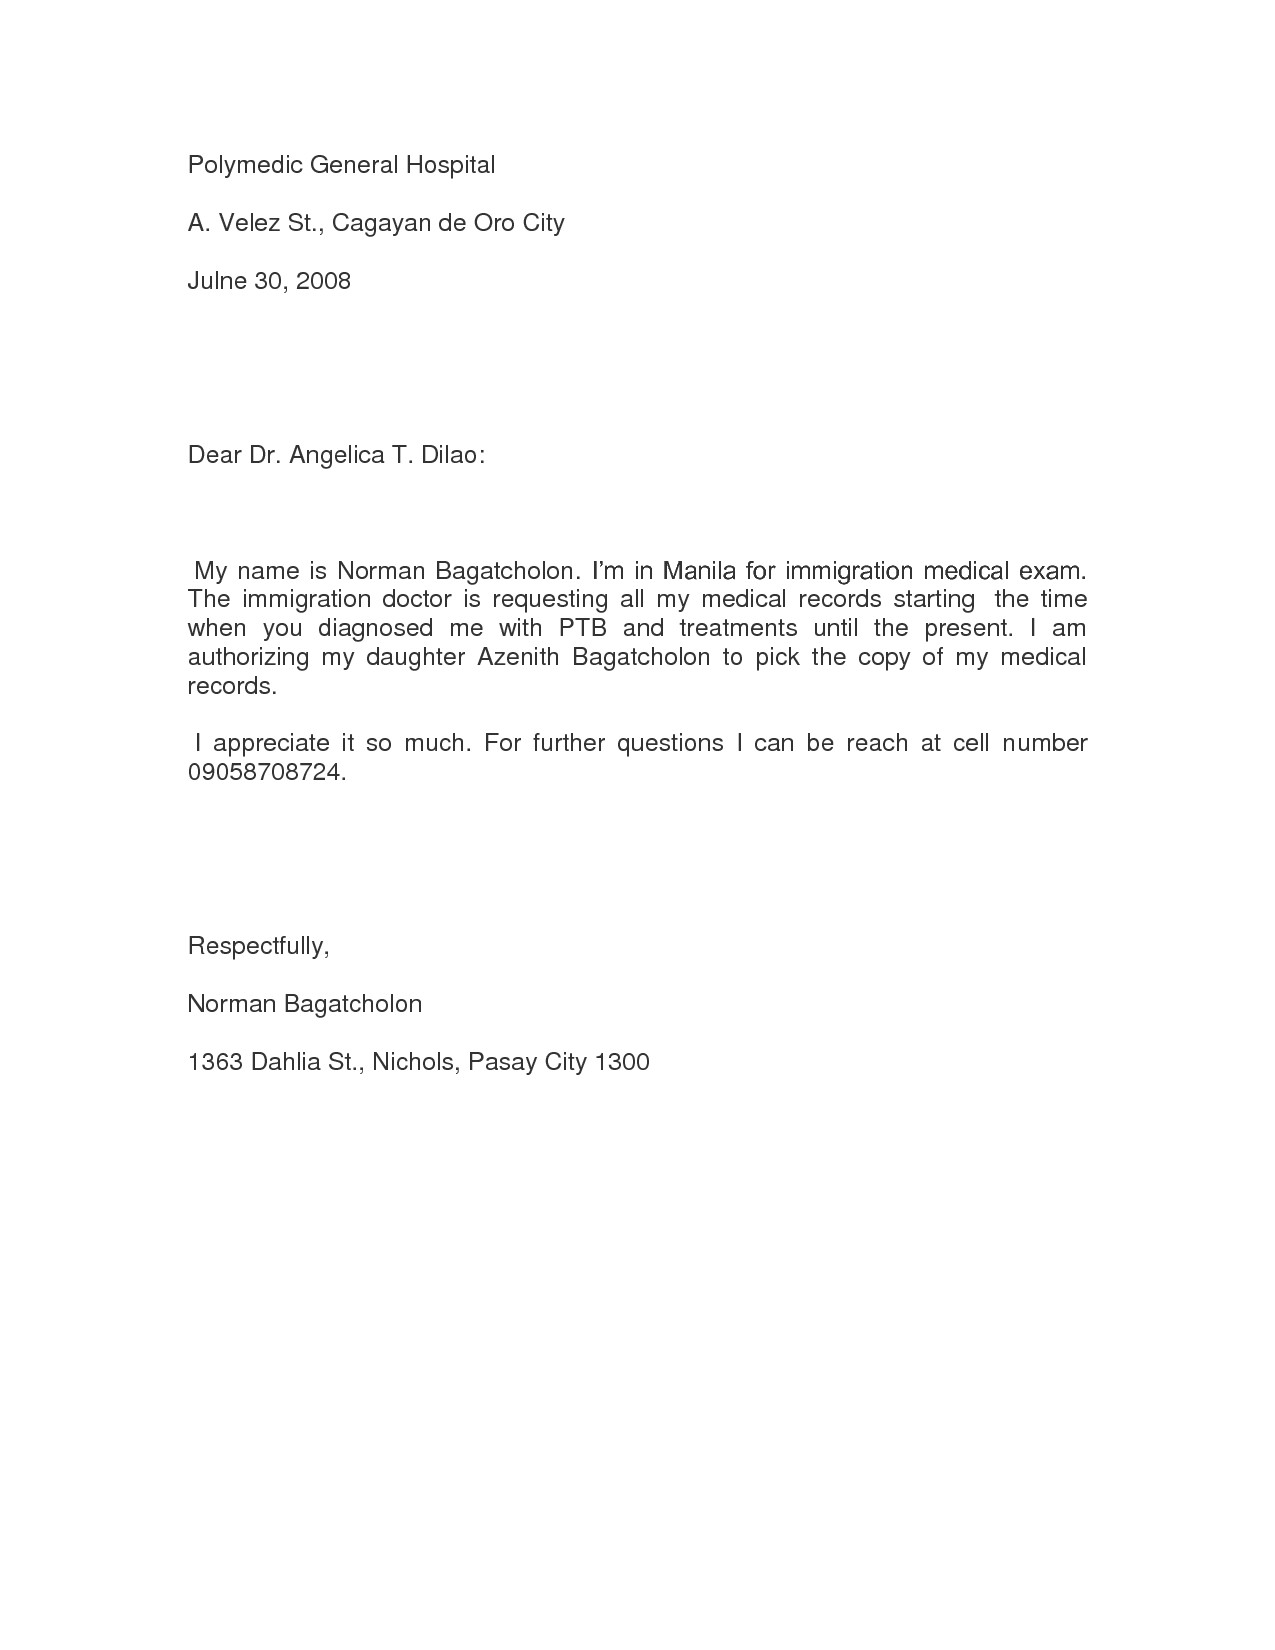 Medical assistant Resignation Letter Best S Of Medical Resignation Letter Medical